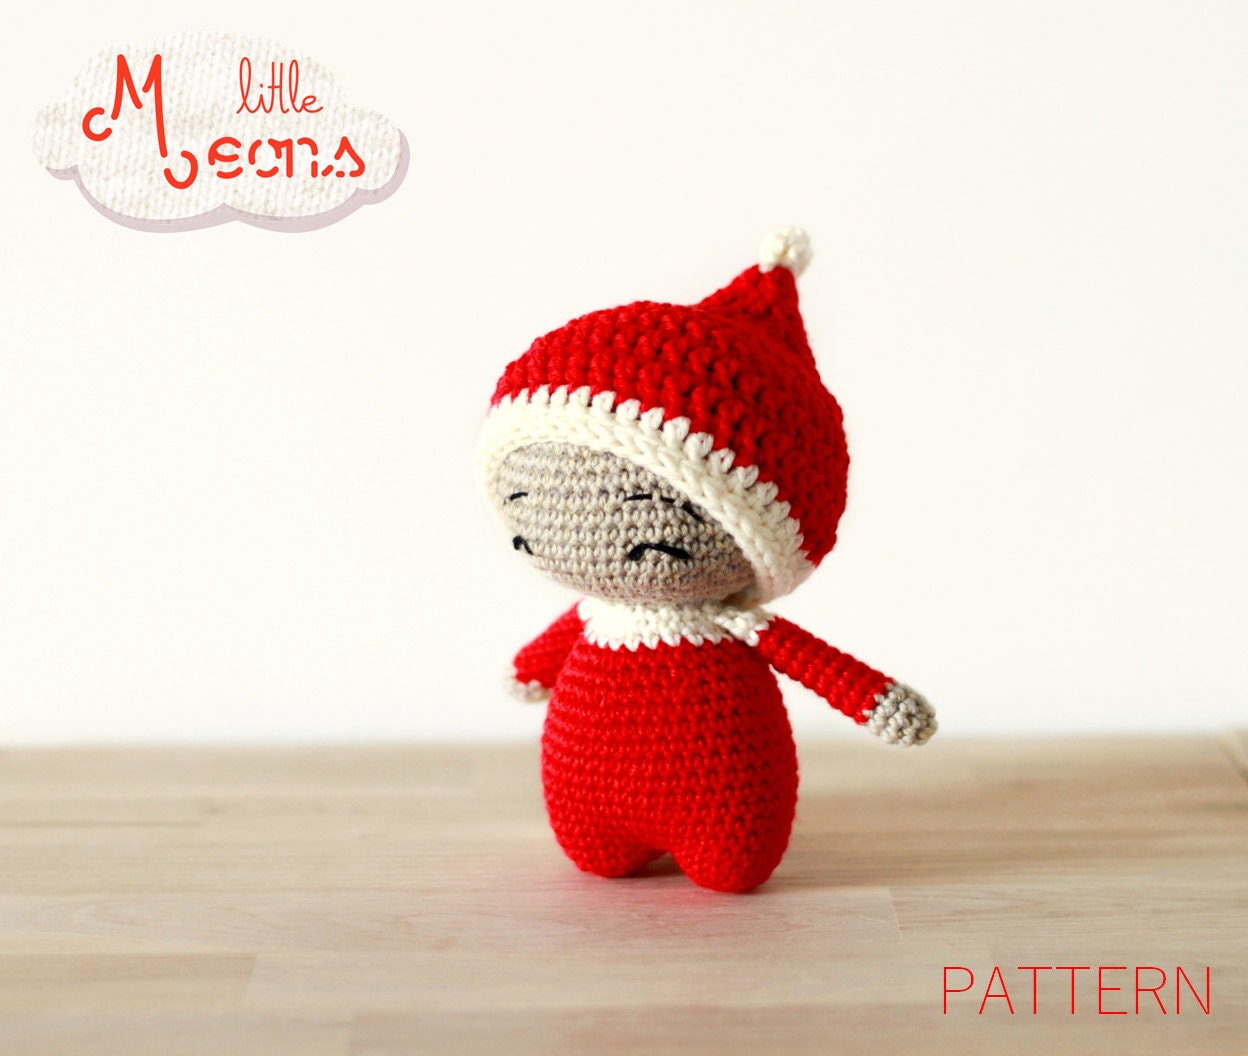 Crochet Amigurumi Doll Body : Crochet PATTERN - Teenytiny little Meons - Amigurumi ...